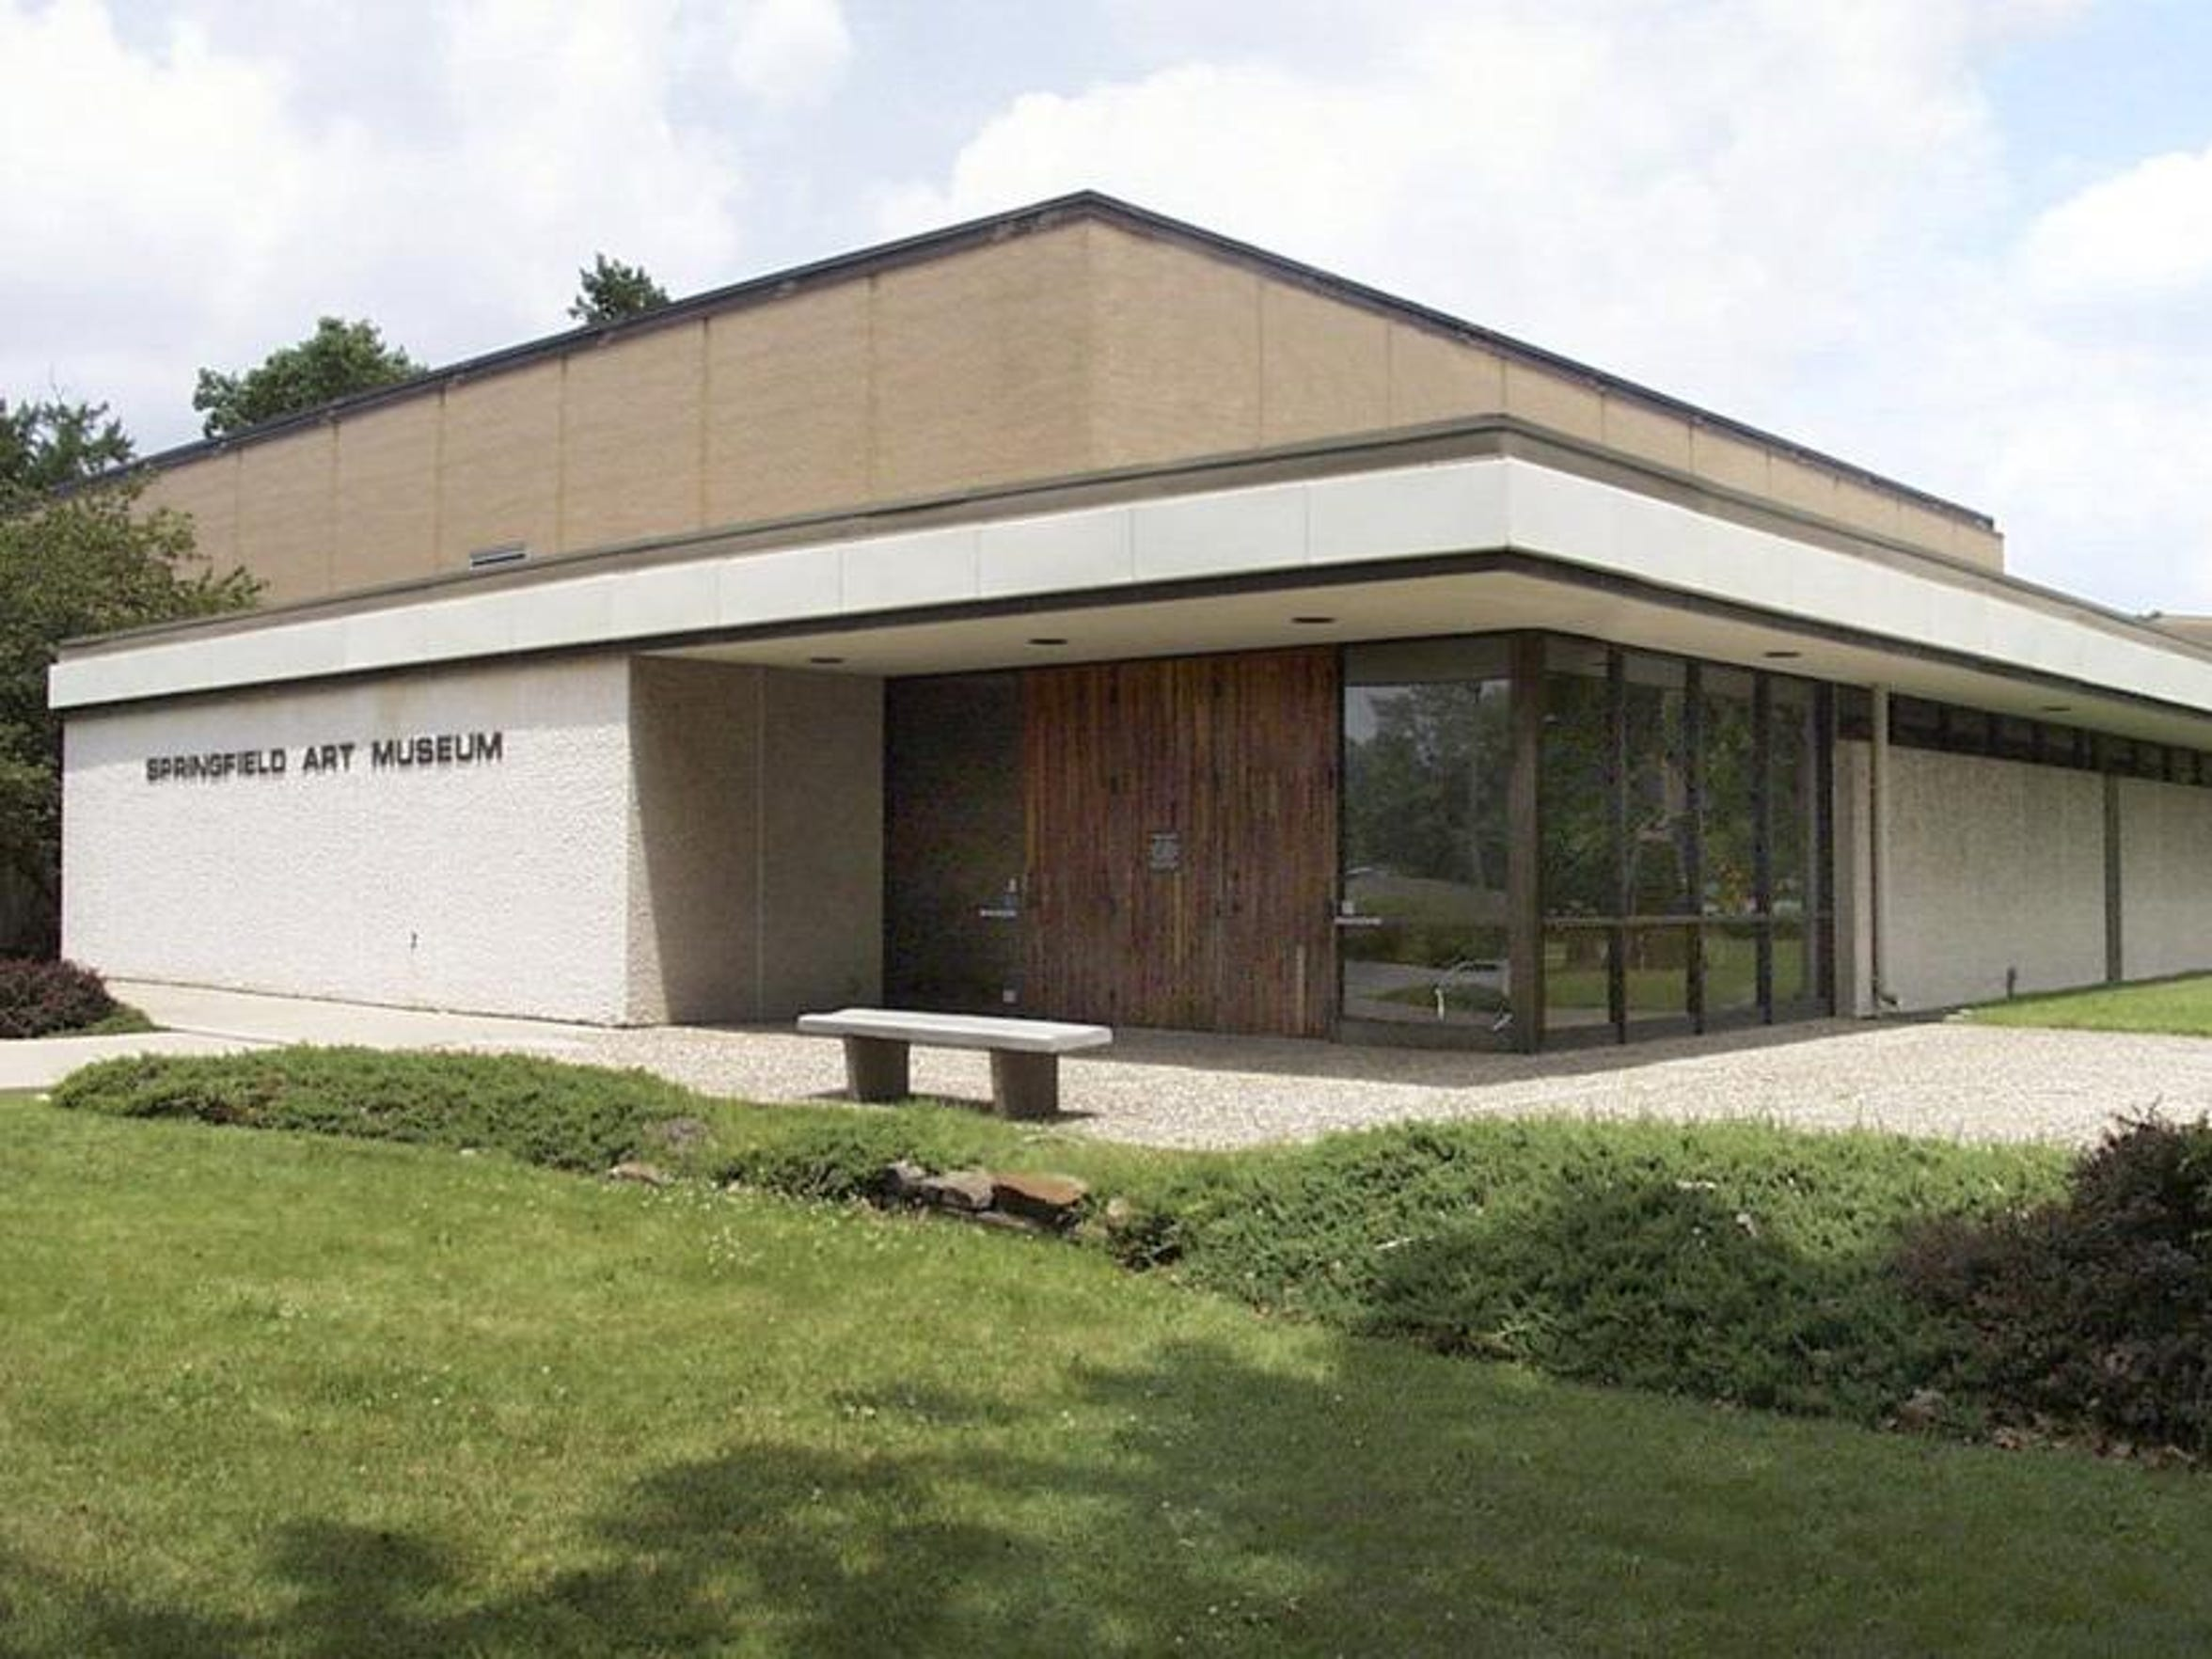 A 2003 photo of the Springfield Art Museum entrance, before the 10,000-square-foot expansion was added in 2008.